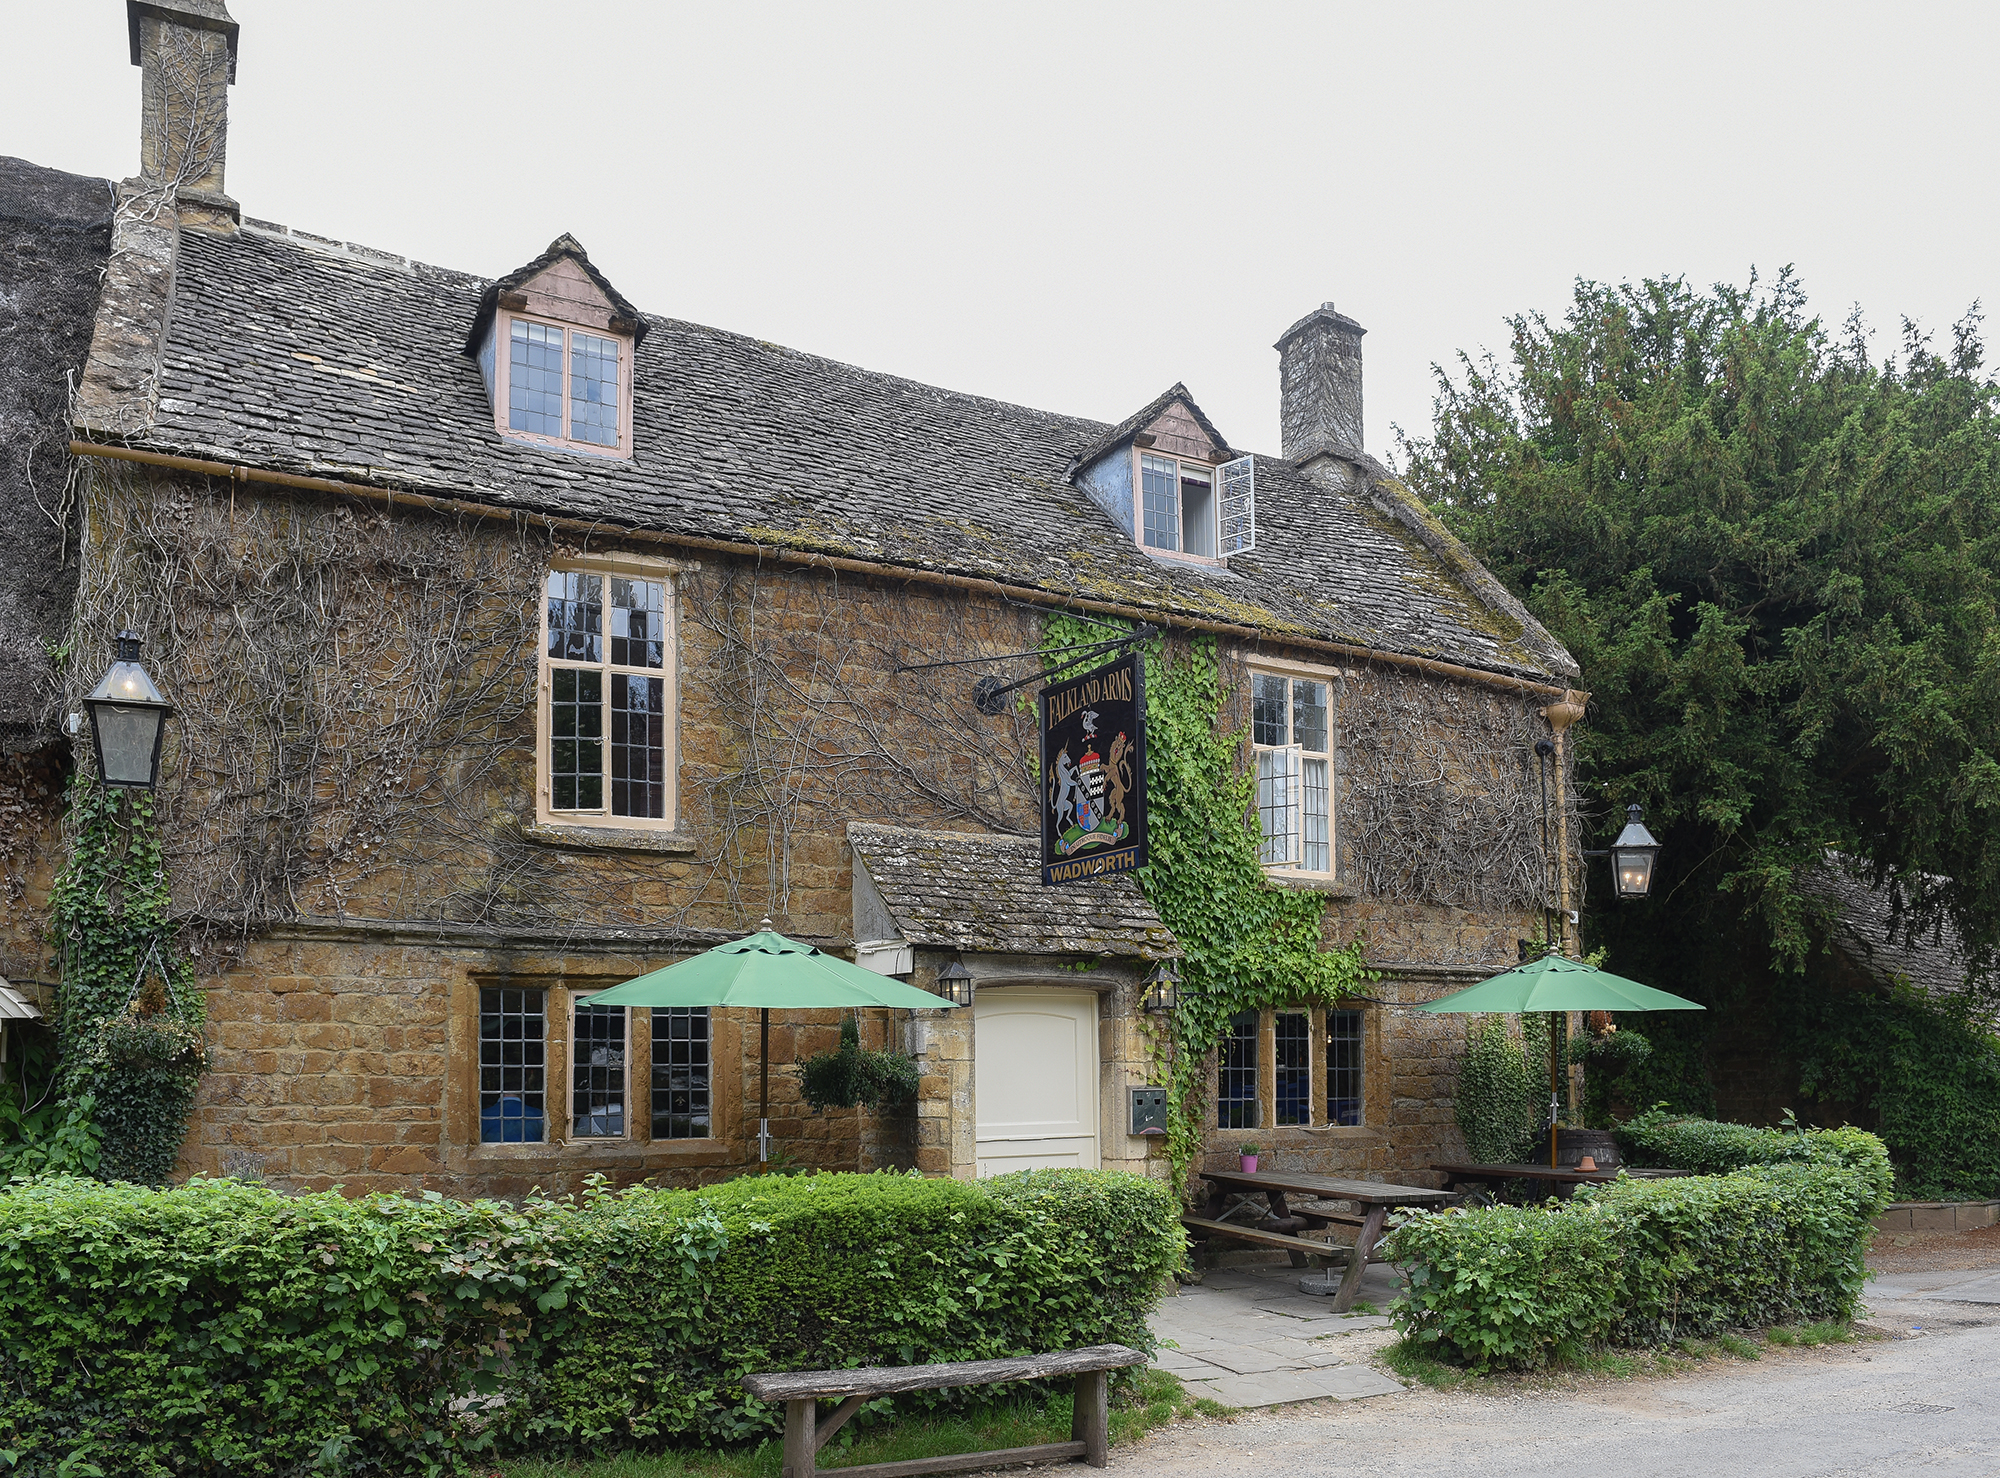 Prince-Harry-and-Duchess-Meghan's-Country-Retreat - Meghan and Harry's Oxfordshire home is close to one of the Suits alum's favorite places, Soho Farmhouse , and is also conveniently located a short walk from the former military pilot's pub, The Falkland Arms (pictured here). The 16-century building features a thatched roof, flagstone floors and oak beams, while the pub's menu includes a selection of beers and bites including a shared starter of Cotswold rare breed plate of cured pig and salami with olives, cornichons, smoked whipped lardo and rustic bread.